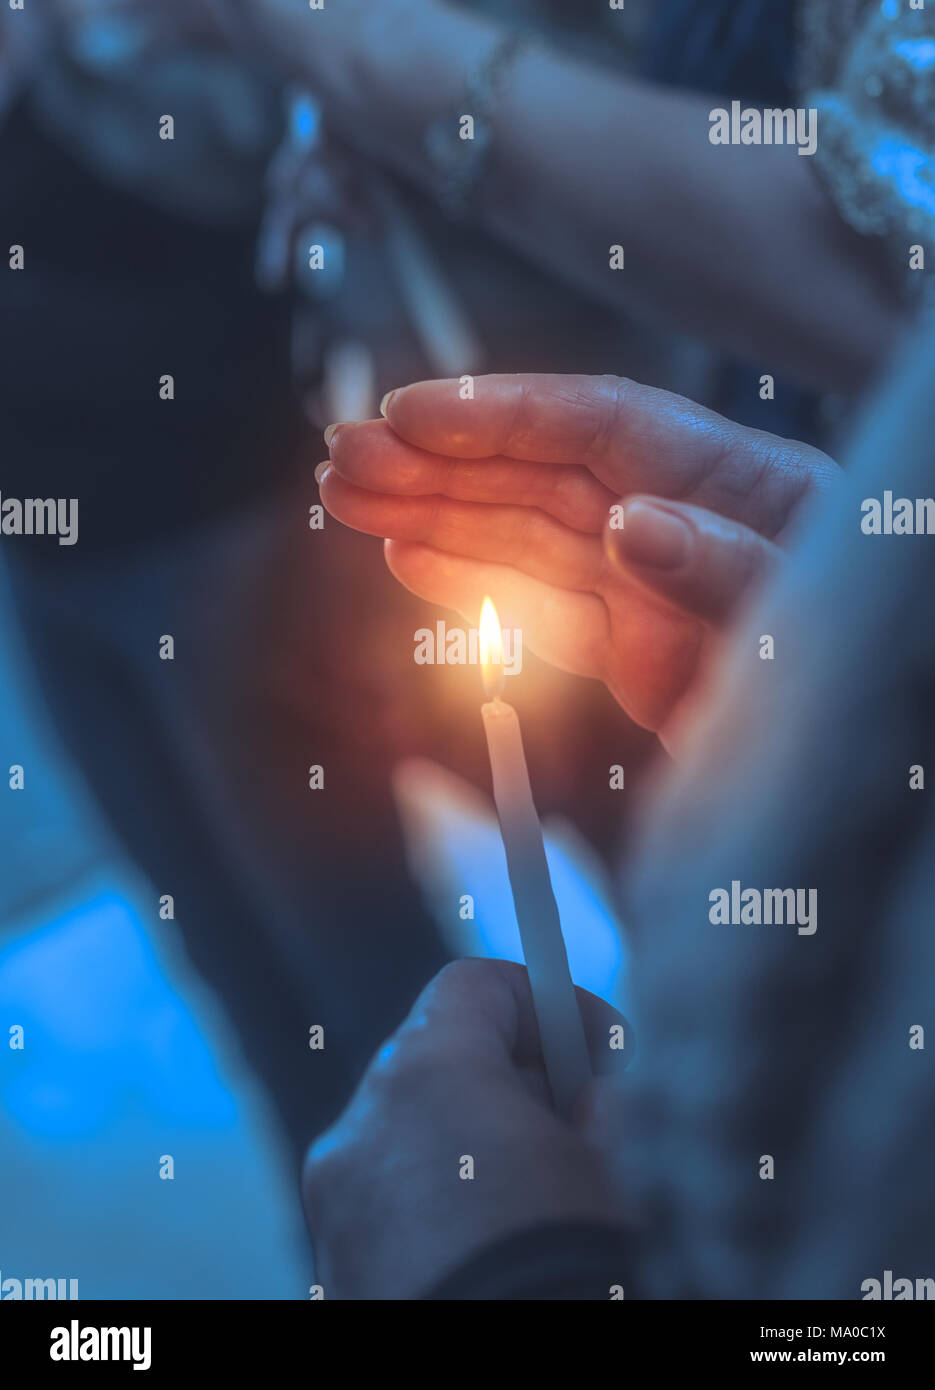 Believer in a church with candle, closeup photo of a woman covers the flame of the candle with her hand, asks for help from God on the Easter holiday - Stock Image